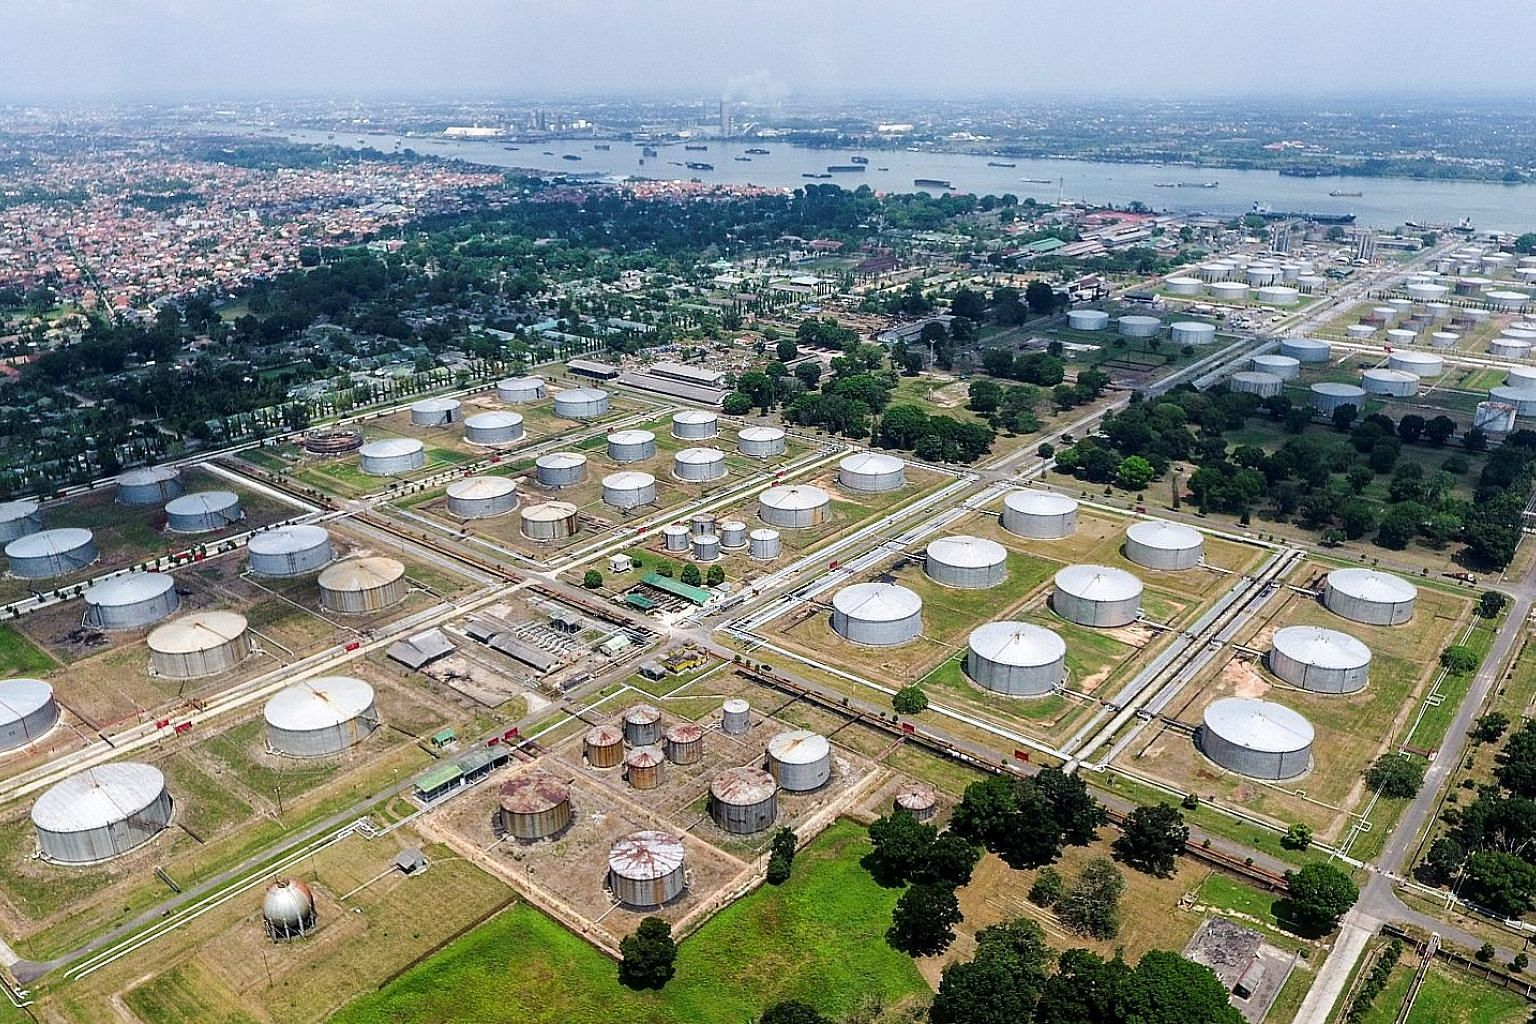 Global market turmoil had threatened to derail the sale of Indonesian state oil company Pertamina's bond offering last week. Bidders offered to buy more than 1.2 times the amount on offer, according to a banker familiar with the transaction.